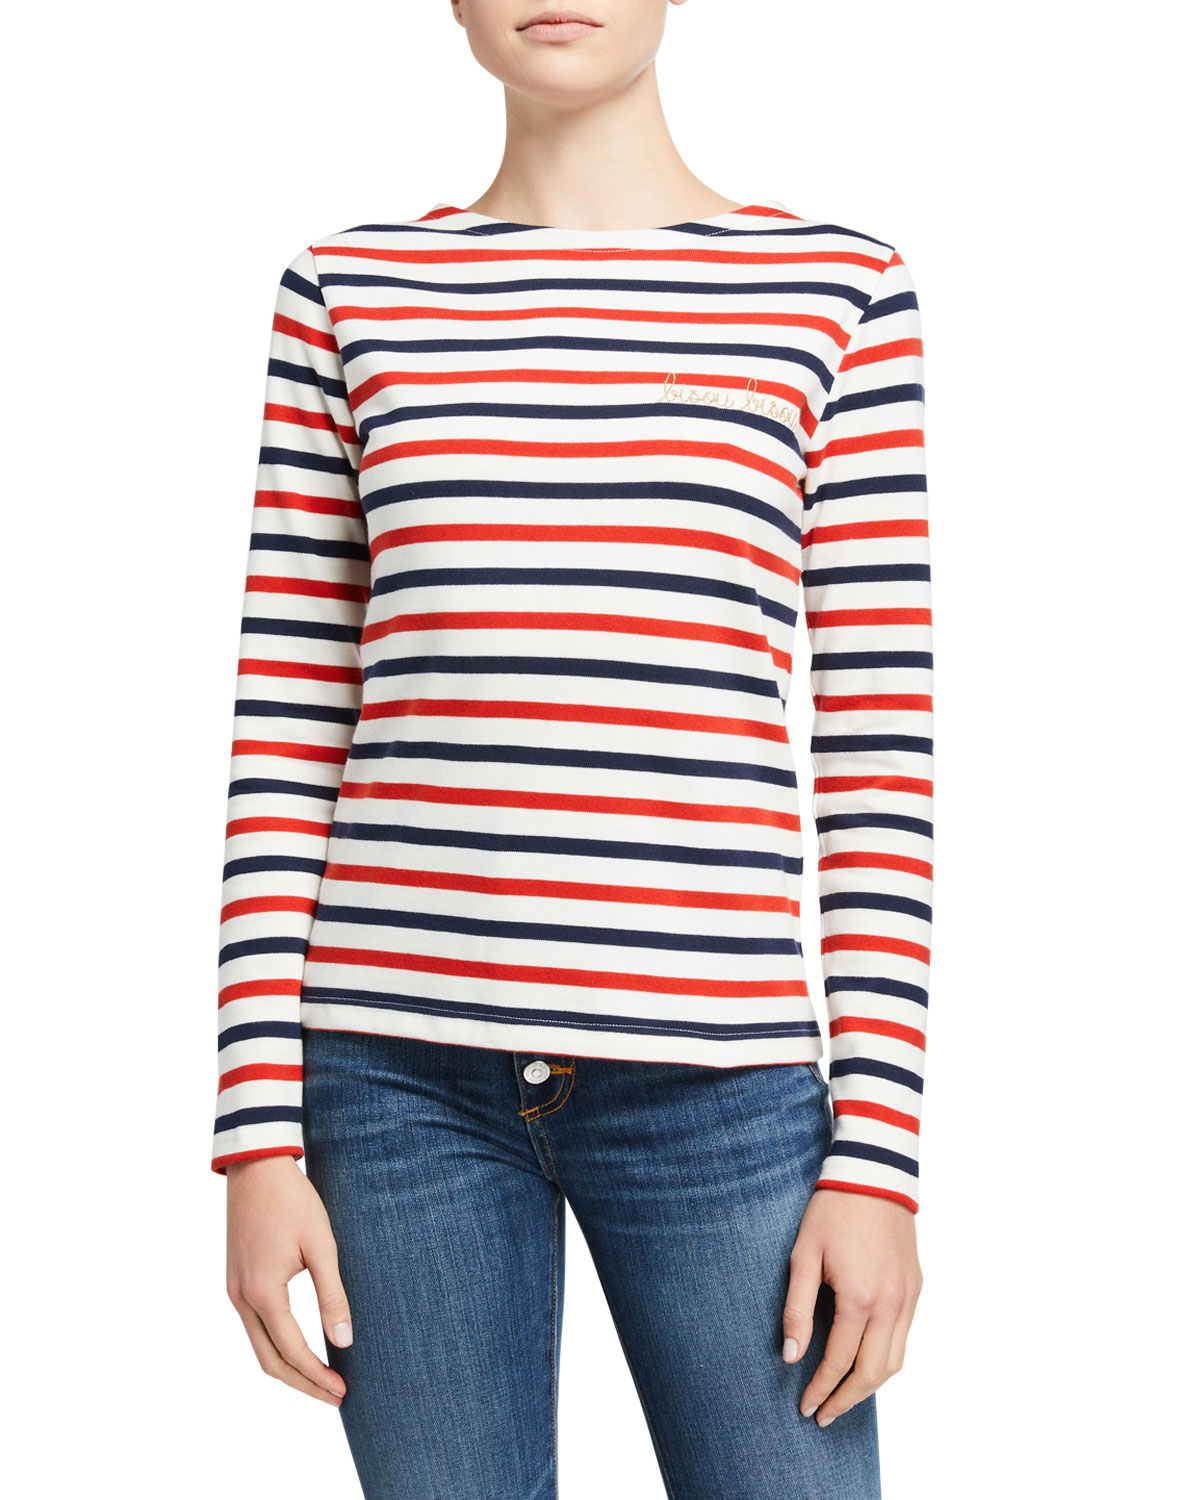 Sailor Striped Bisou Long Sleeve Top by Maison Labiche